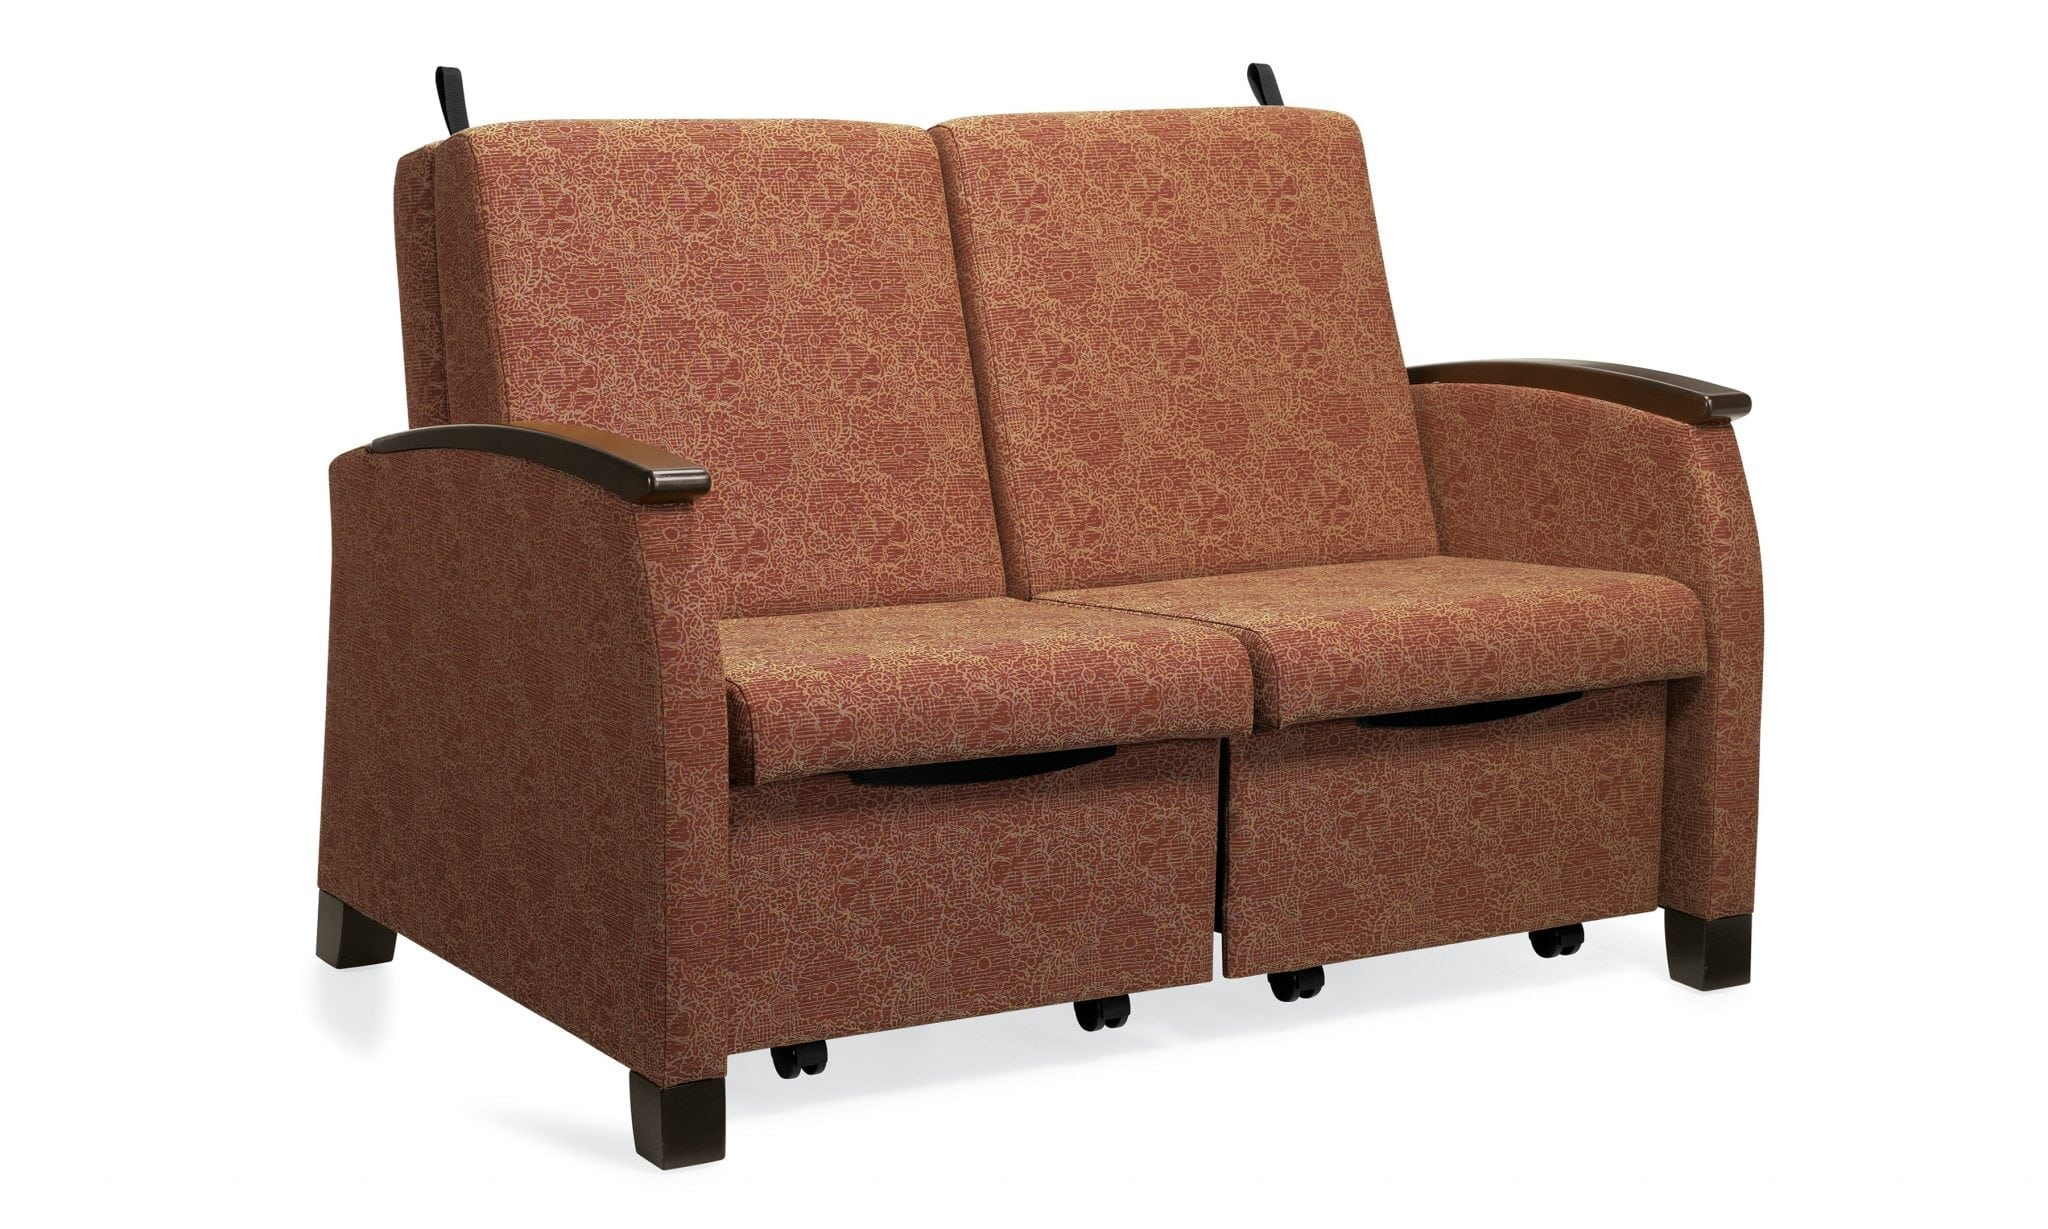 Primacare seating is popular choice for any patient area or healthcare setting